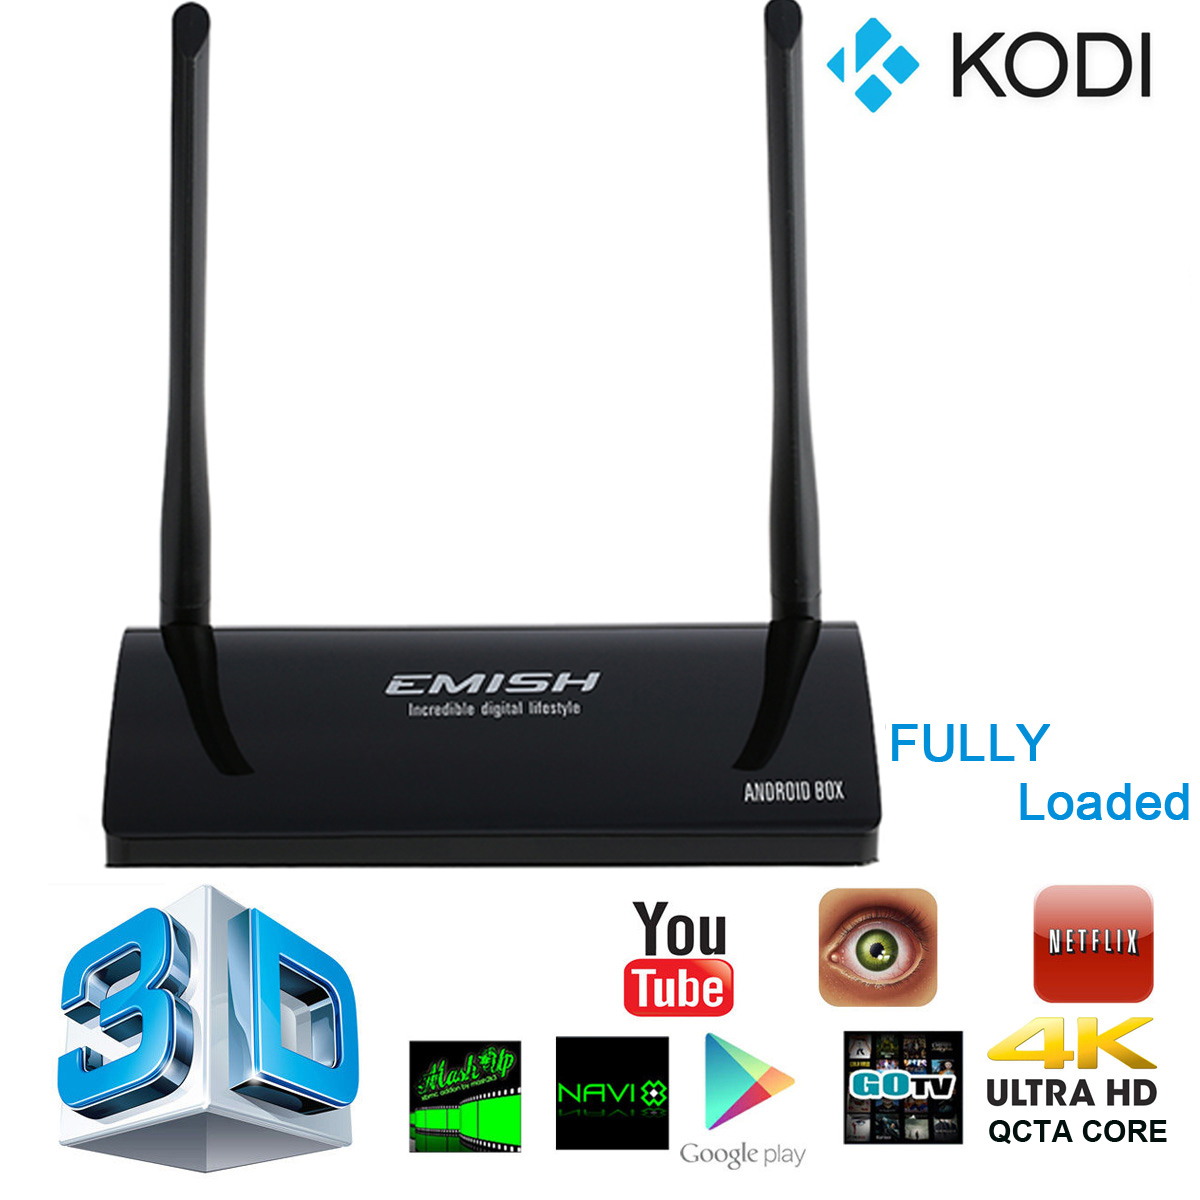 Emish X800 KODI Smart Android 5.1 TV Box 1GB/8GB WIFI Bluetooth 4.0 3368 Qcta Core Fully Loaded XBMC Media Player UK Plug AH109(China (Mainland))